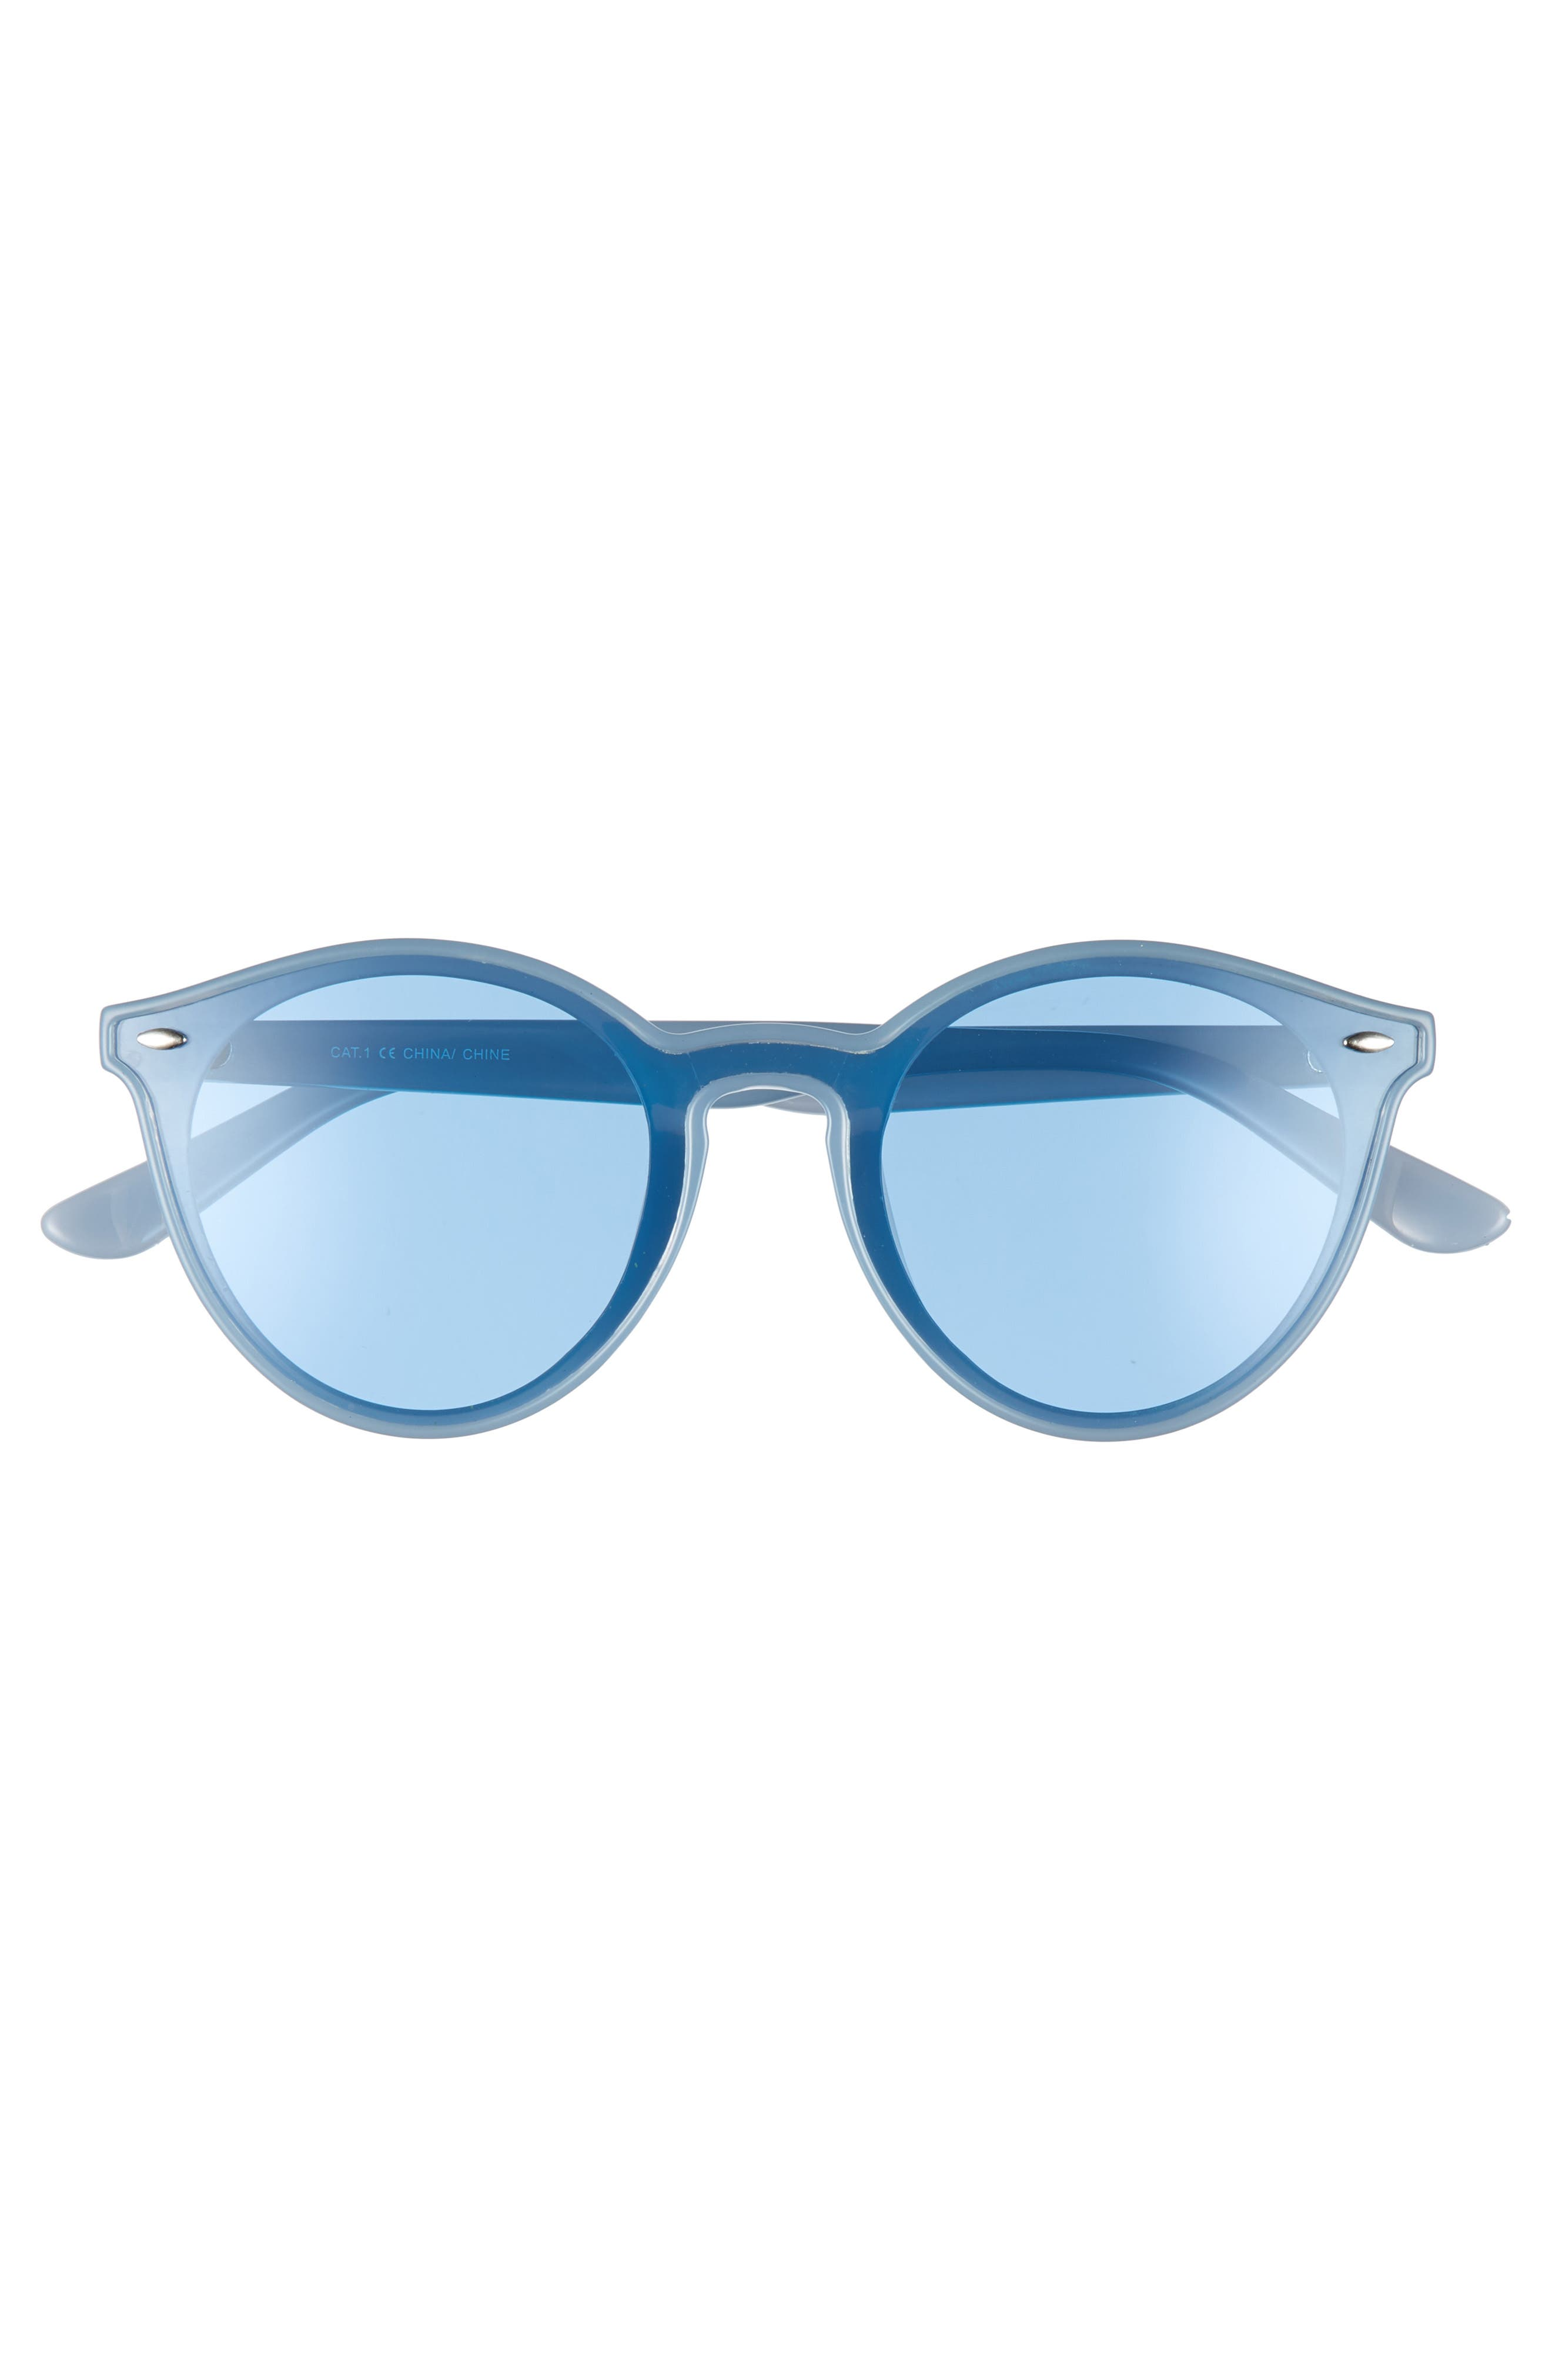 THE RAIL, Nico 53mm Round Sunglasses, Alternate thumbnail 2, color, BLUE/ BLUE